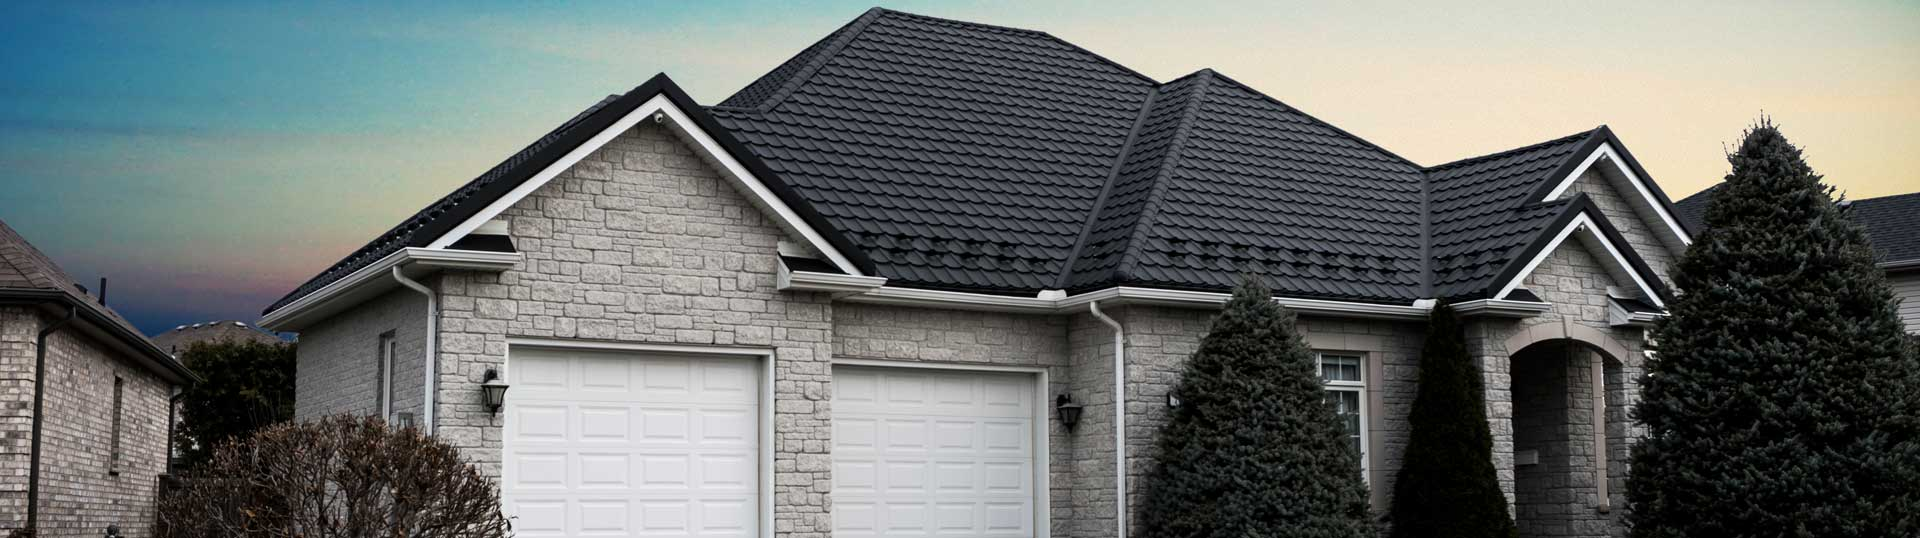 Metal Roofing Slider Image London, Ontario